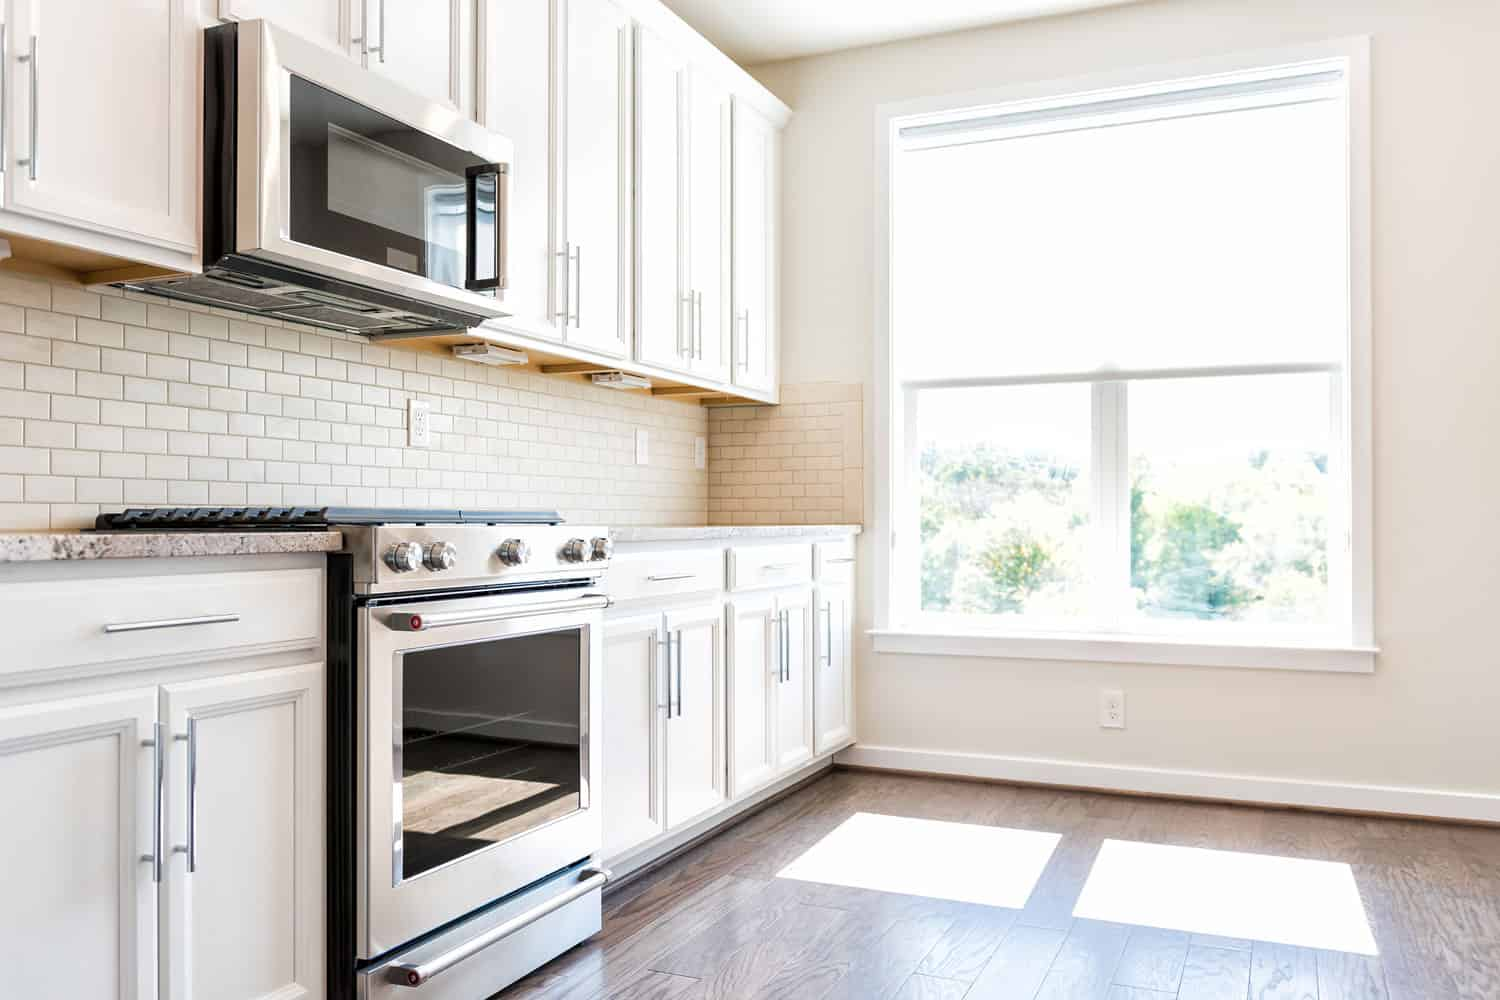 Modern gray, brown neutral kitchen features front cabinets with granite countertops and tile backsplash, window in contemporary home, Should Kitchen Cabinets Match Your Trim?